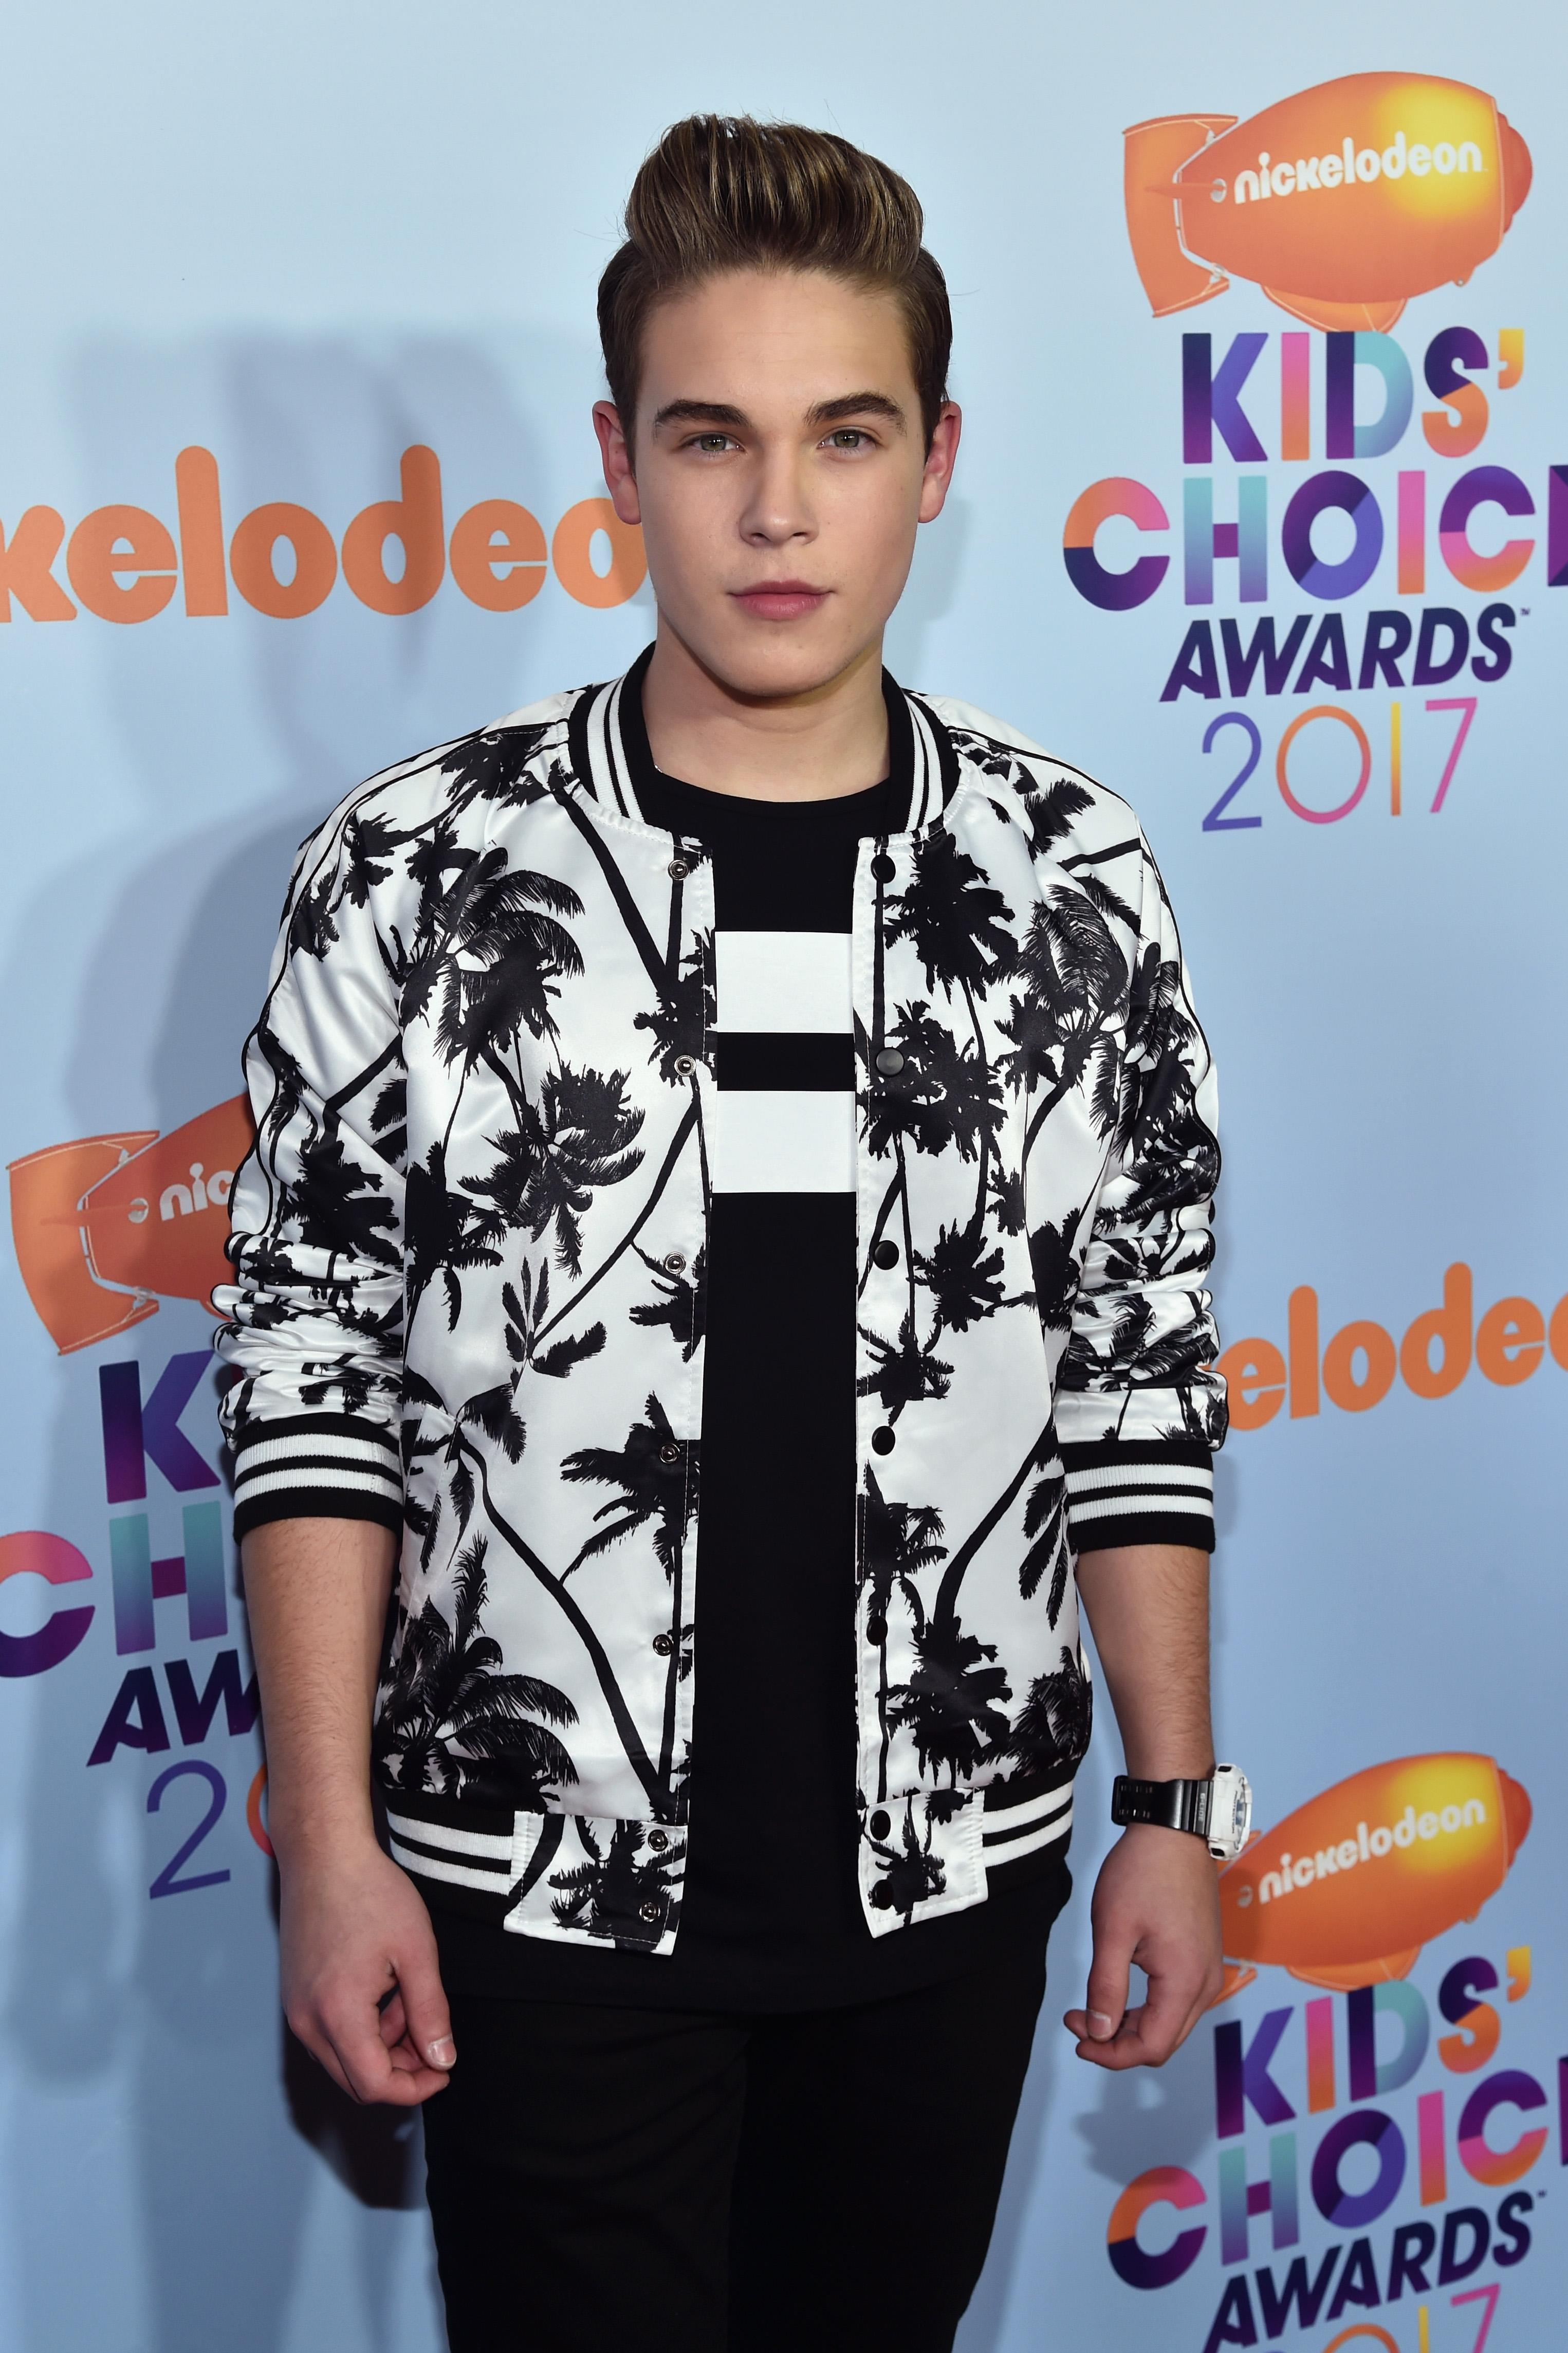 Kids Choice Awards 2017 The Best And Worst From The Kcas